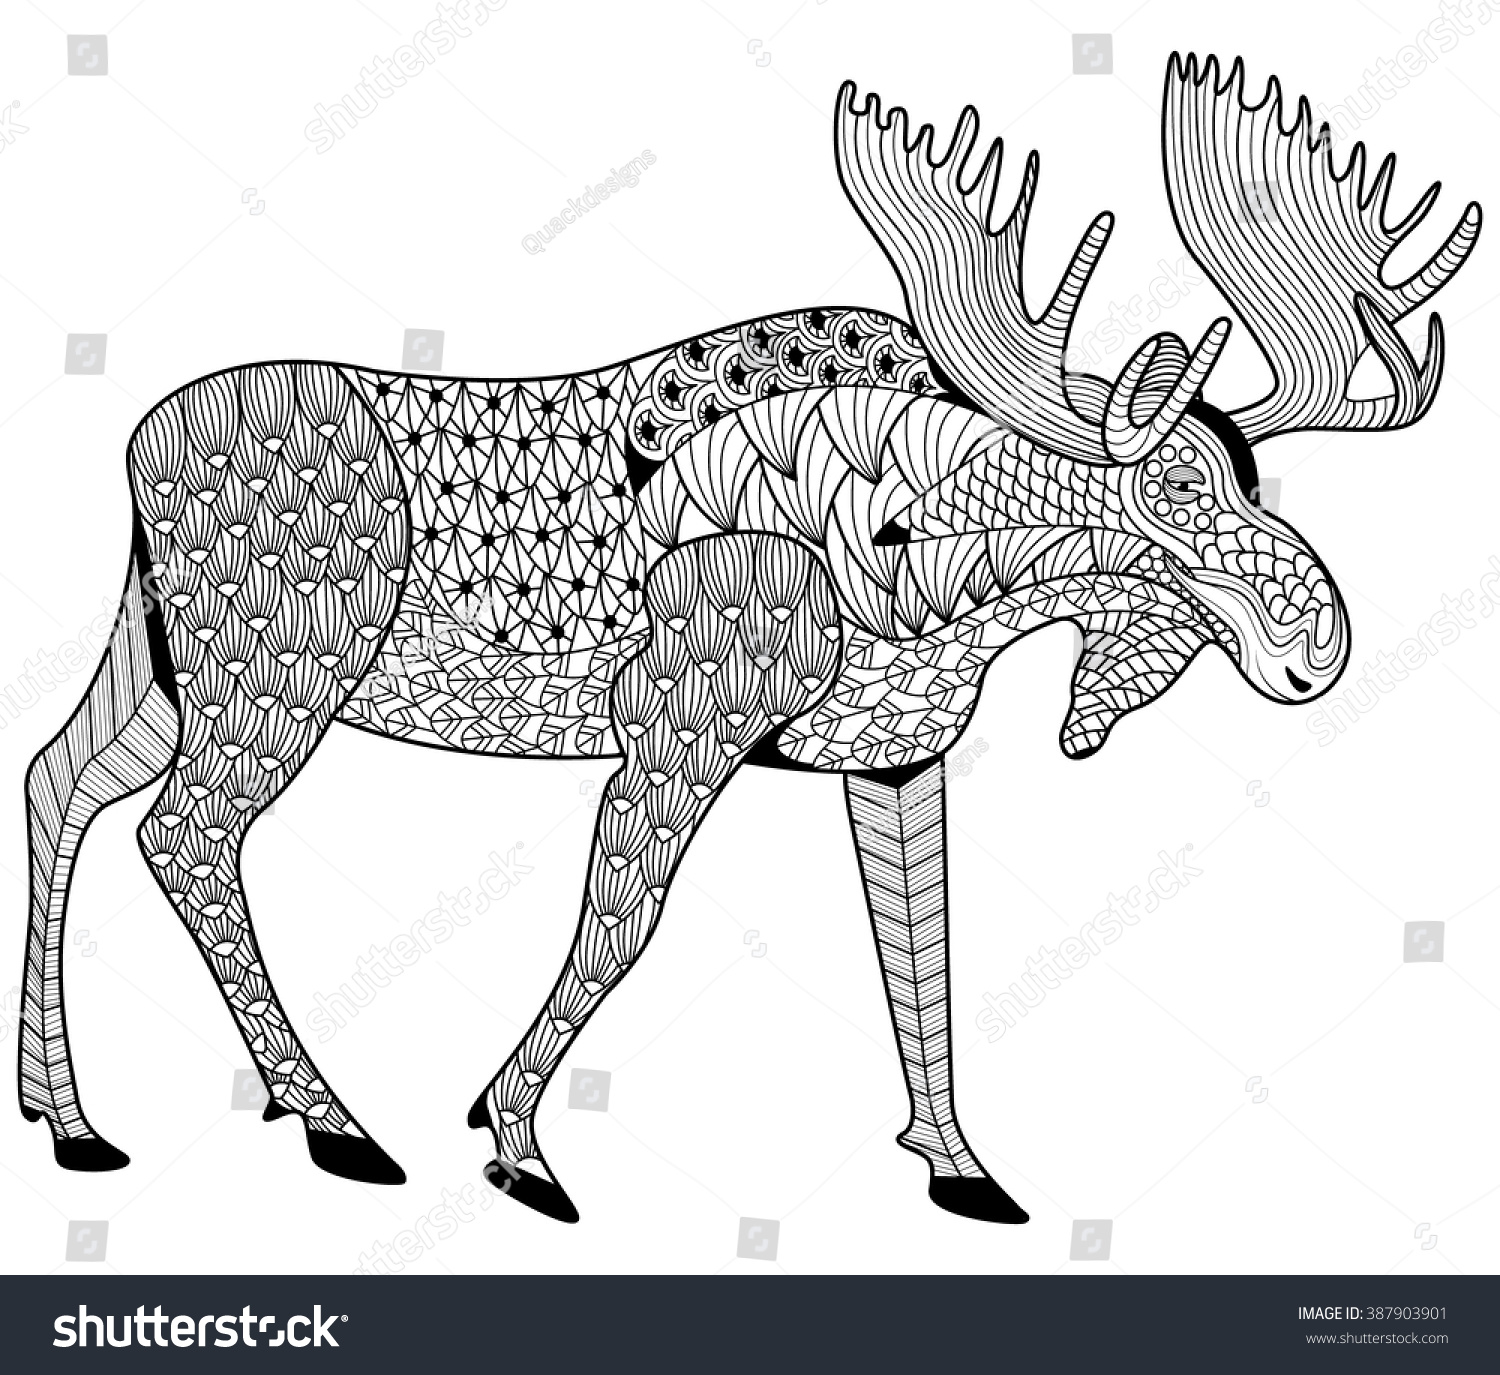 moose coloring page adults zen tangle stock vector 387903901